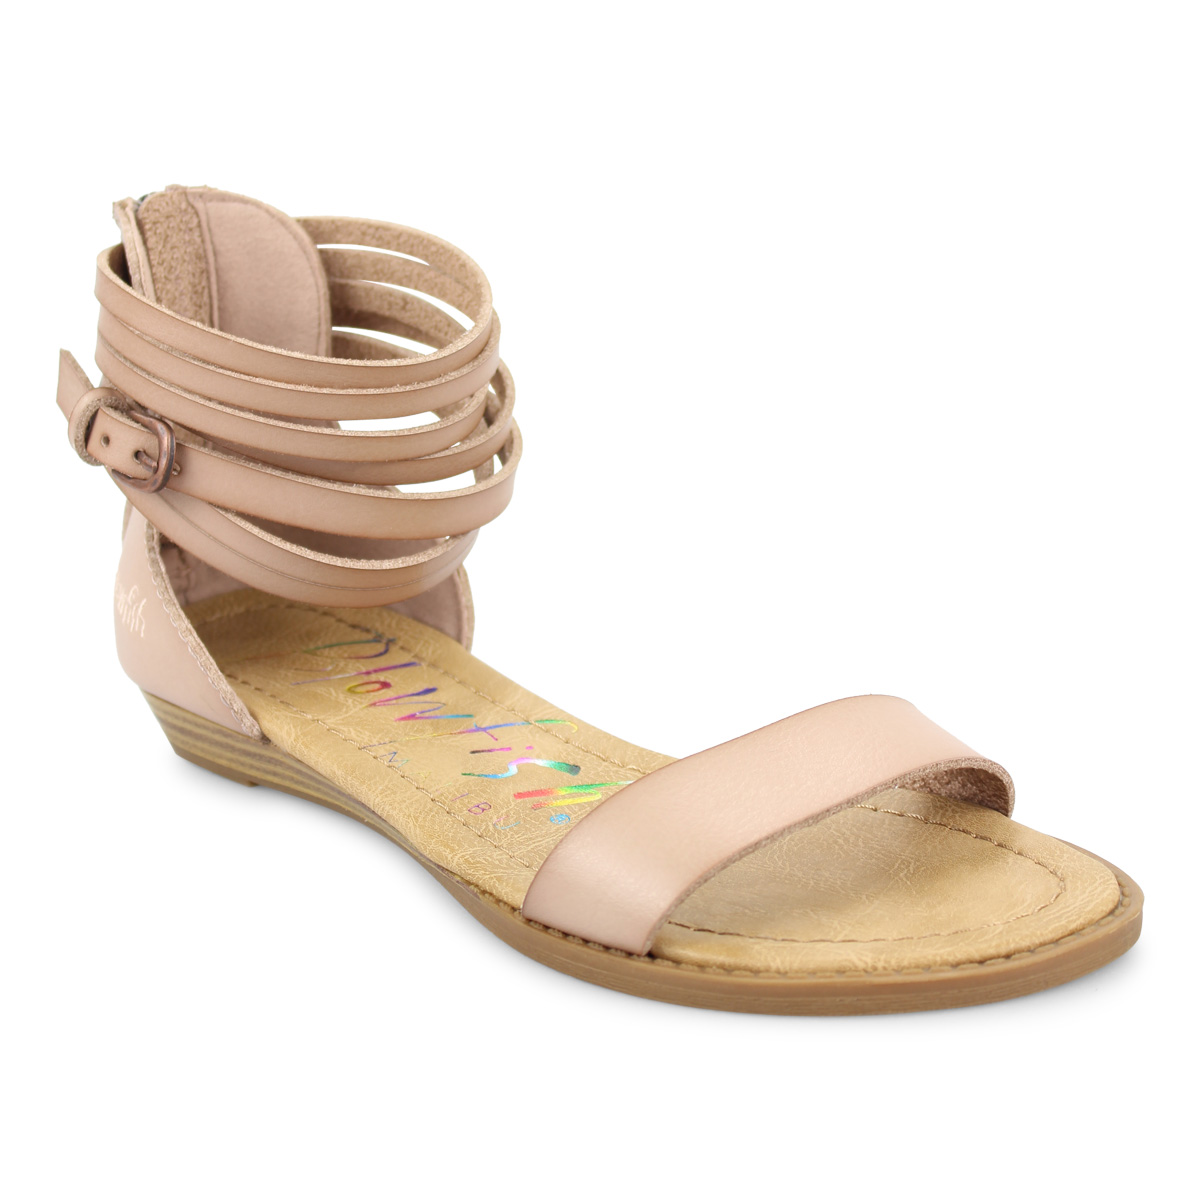 53f648e34 Blowfish-Womens-Becha-Micro-Wedge-Multi-Strap-Sandal thumbnail